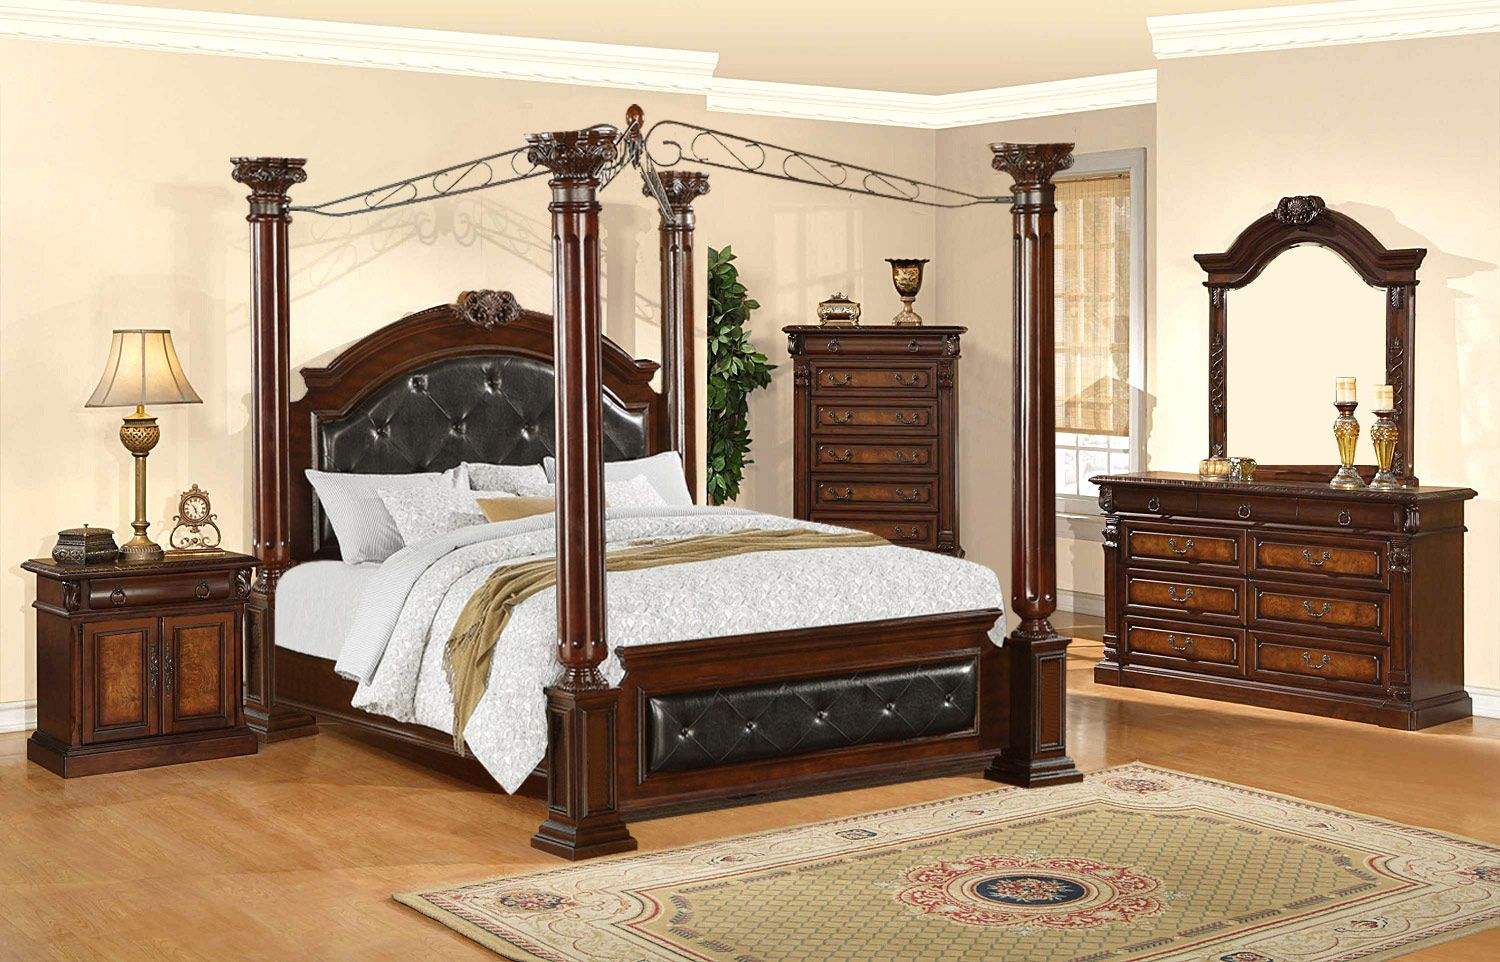 bedrooms toscano by generation trade dallas furniture outlet 1525 1885 w king - King Bedroom Sets Dallas